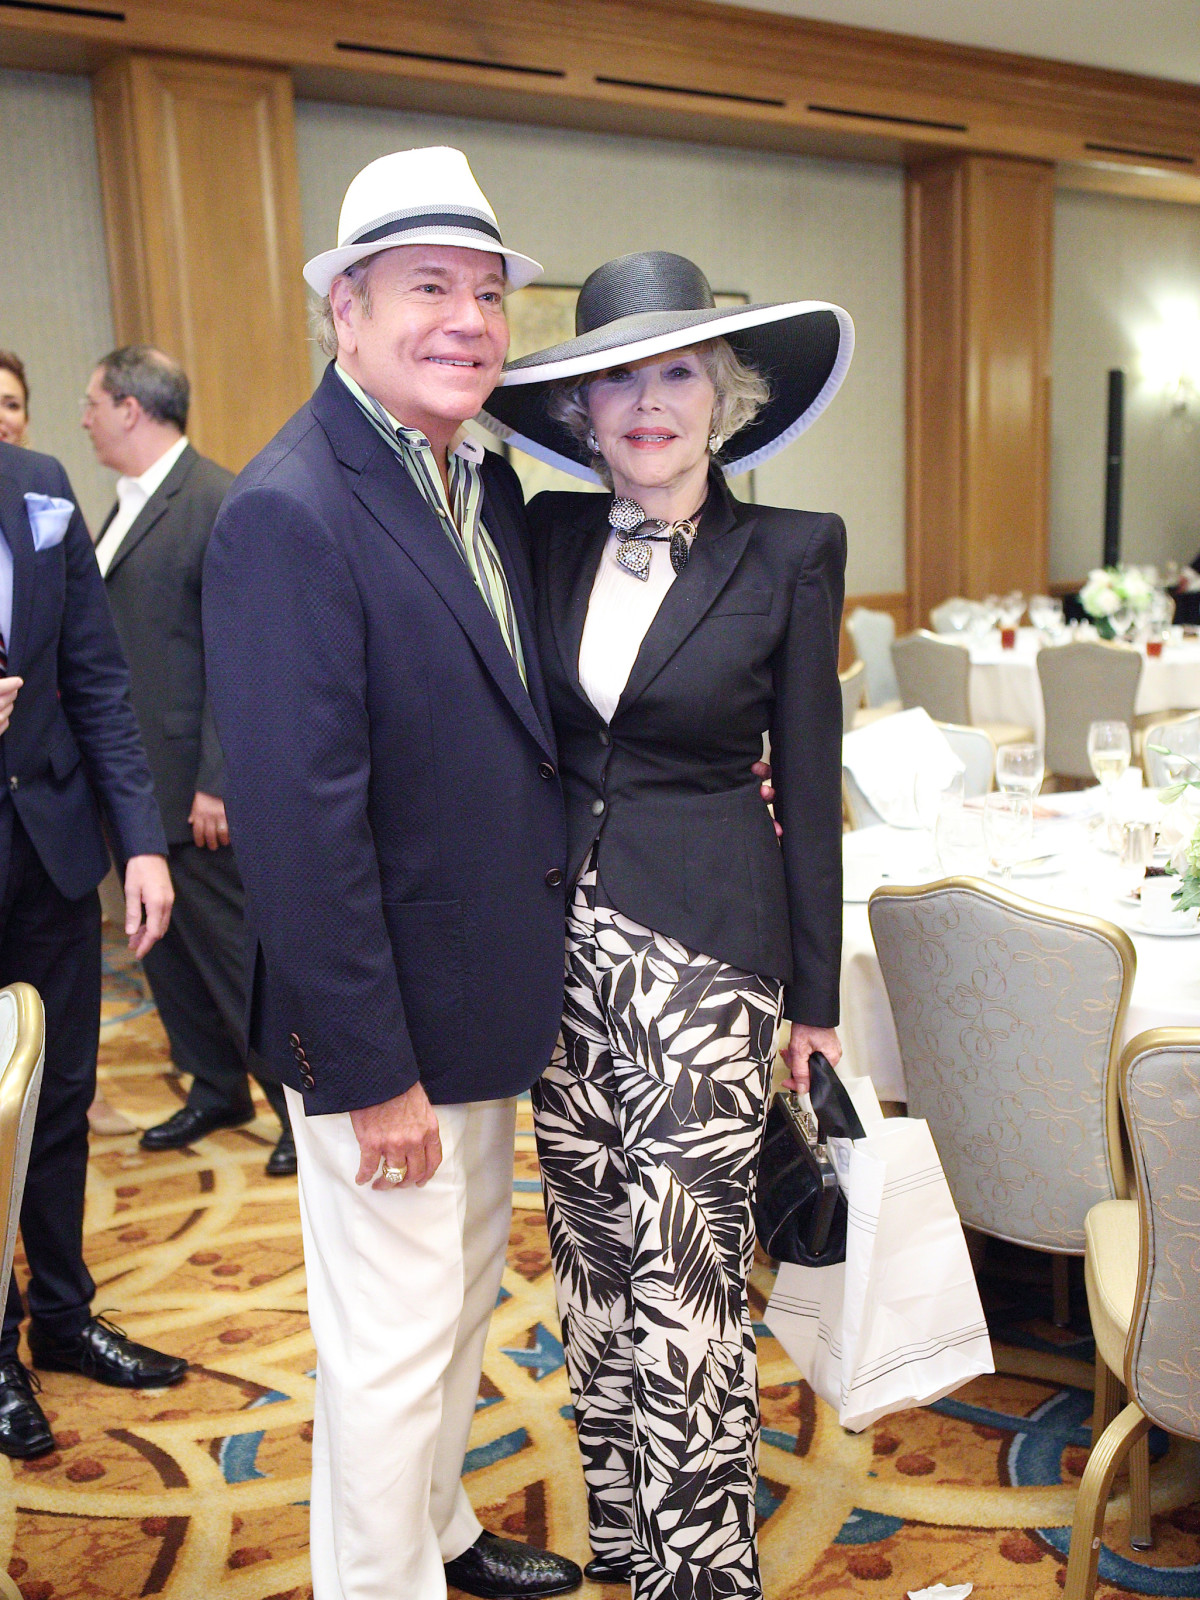 Bubba McNeely, Joanne King Herring at Great Age Movement fundraiser